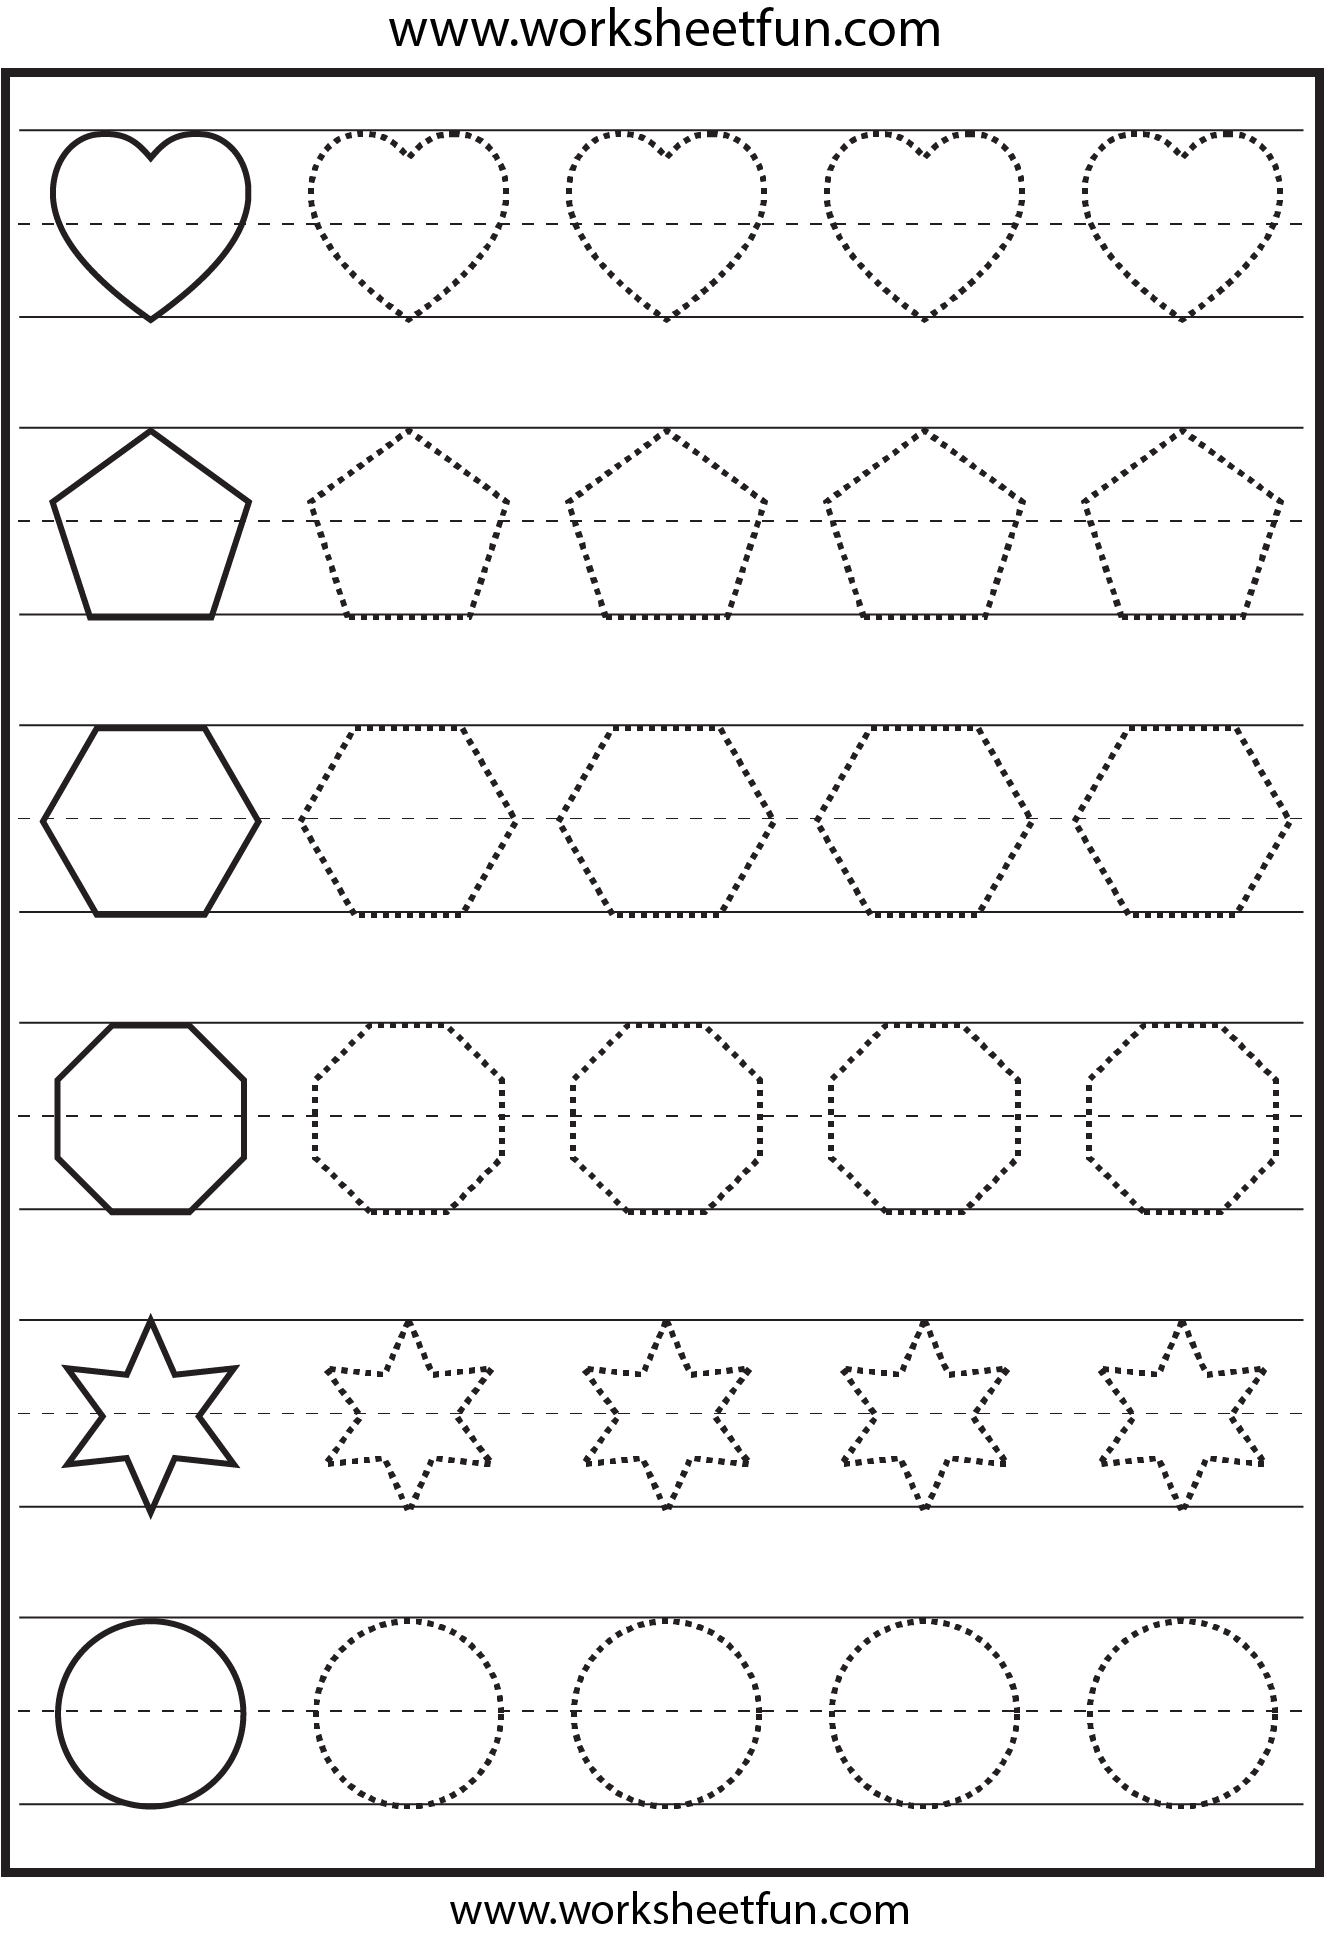 Worksheets Tracing Shapes Worksheets 1000 images about tracing worksheets on pinterest fine motor alphabet and preschool